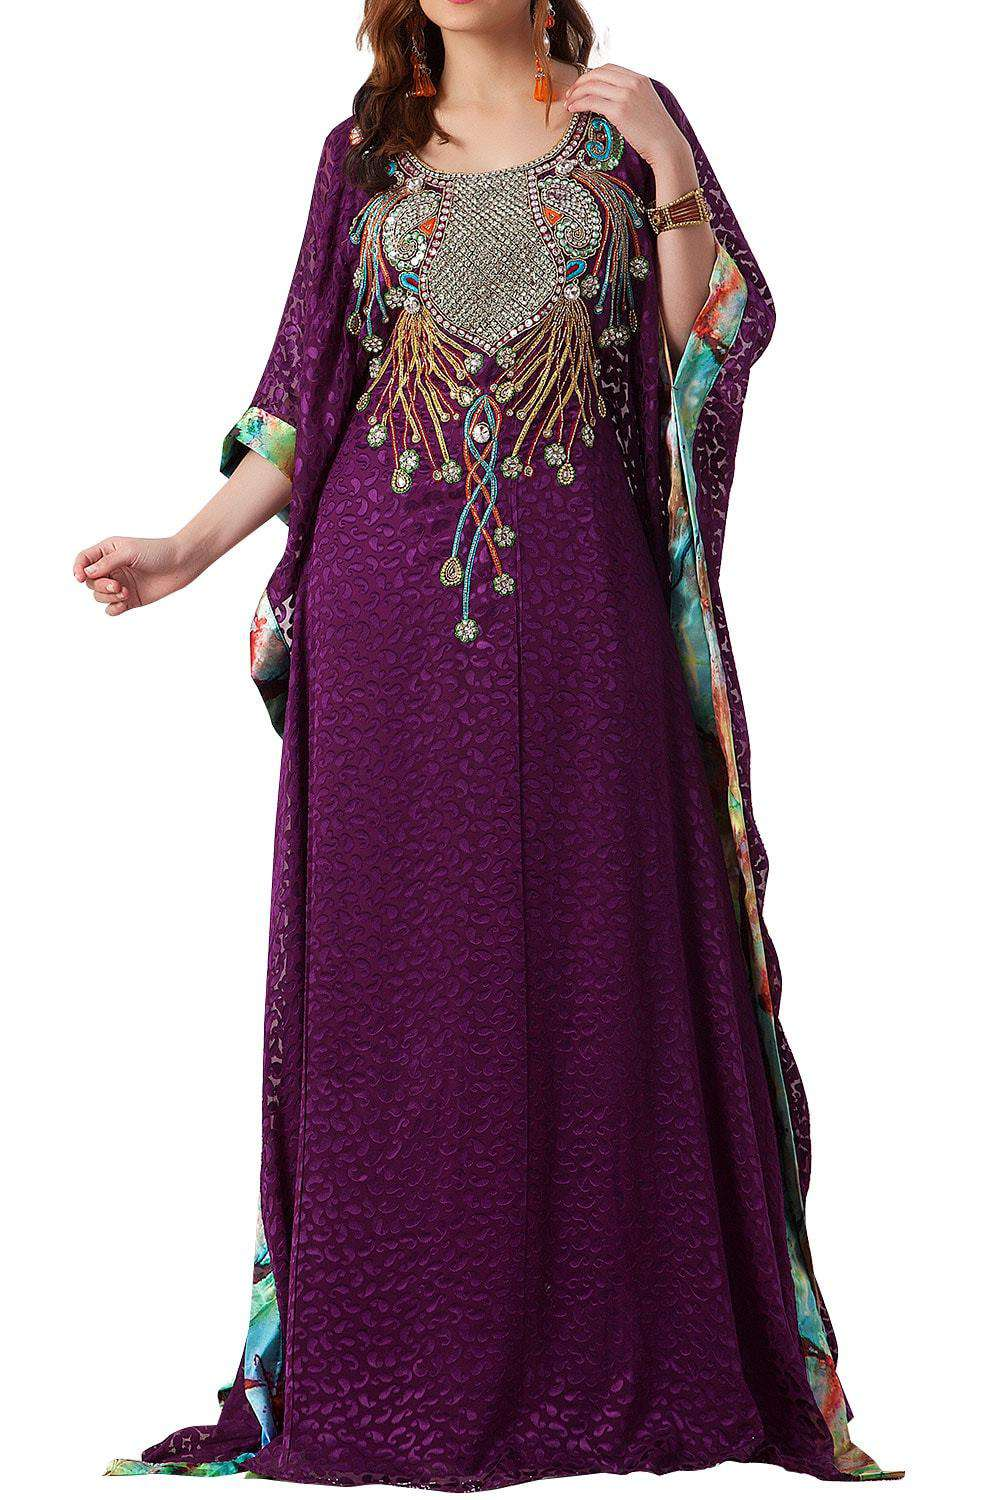 Dark Fuchsia and Pastel Color Hand Beaded Evening Party Dress Farasha